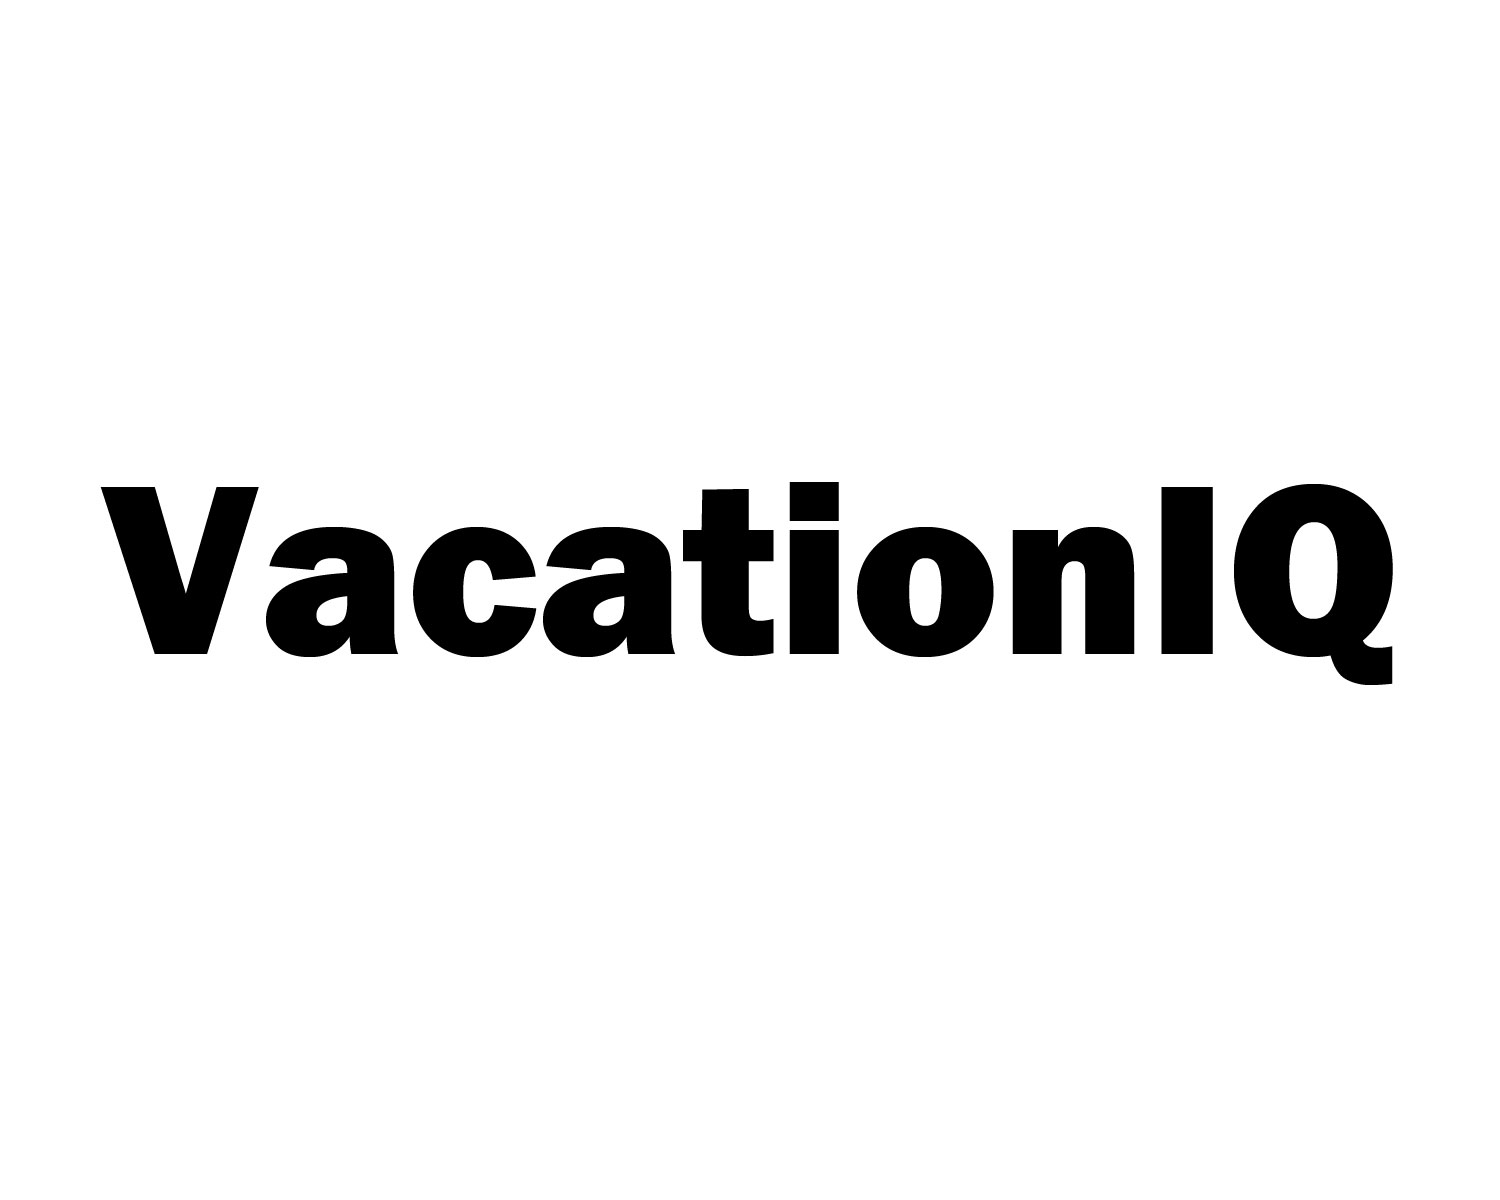 VacationIQ